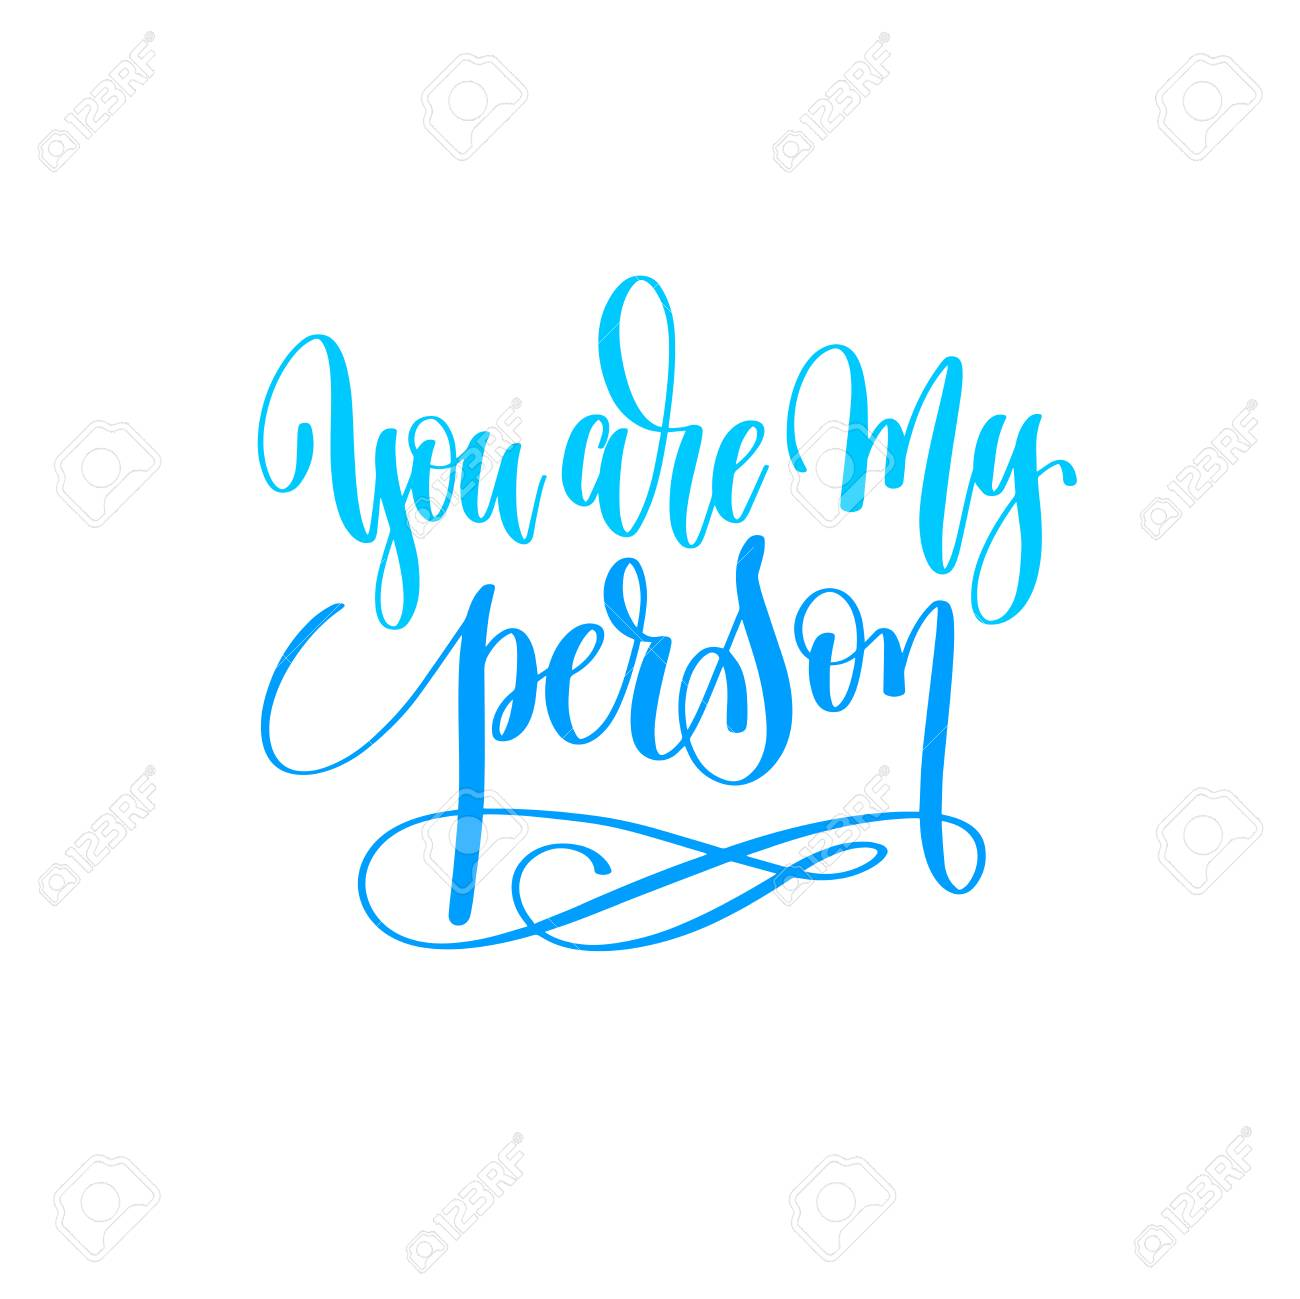 You are my person hand lettering calligraphy quote to valentines..